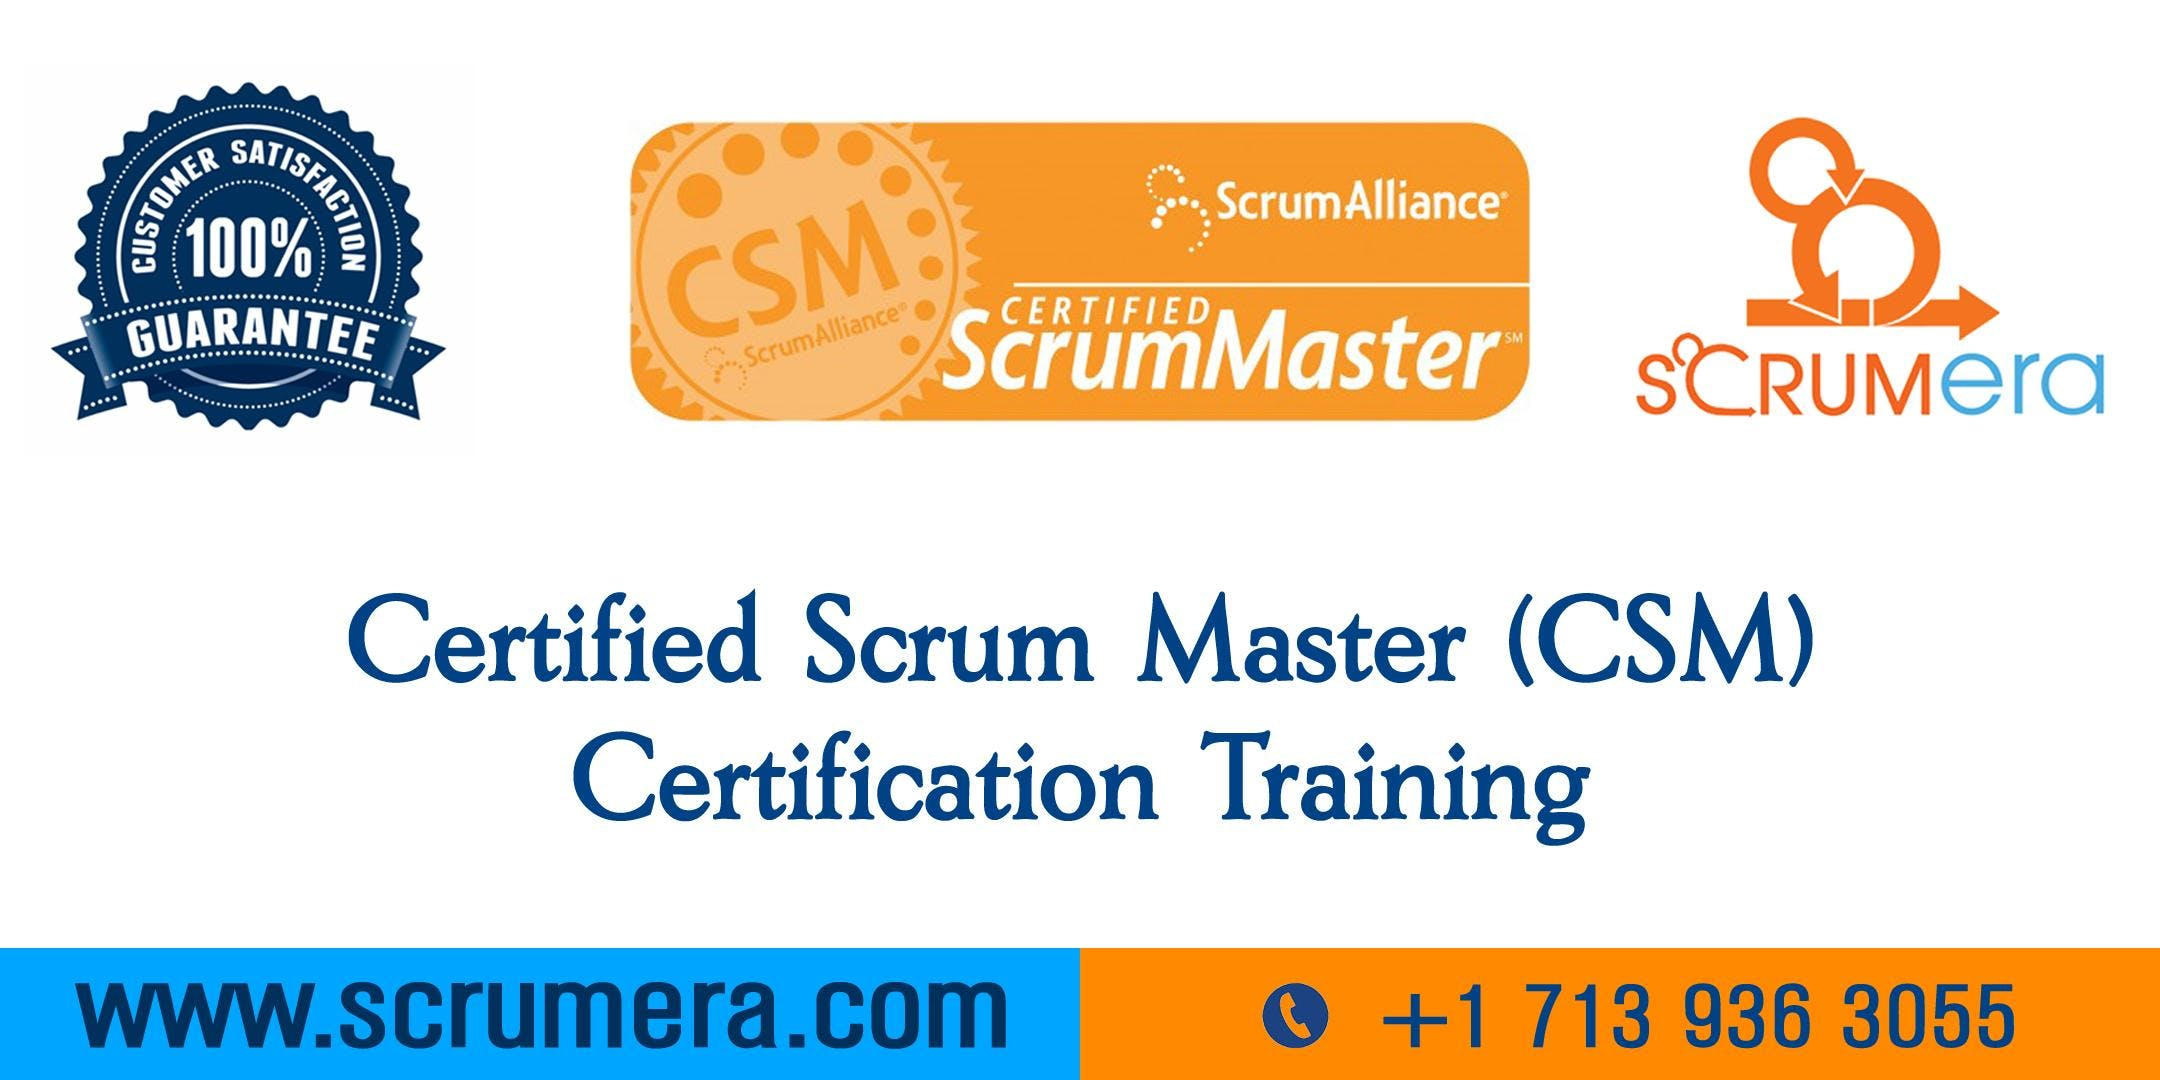 Scrum Master Certification | CSM Training | CSM Certification Workshop | Certified Scrum Master (CSM) Training in Elizabeth, NJ | ScrumERA